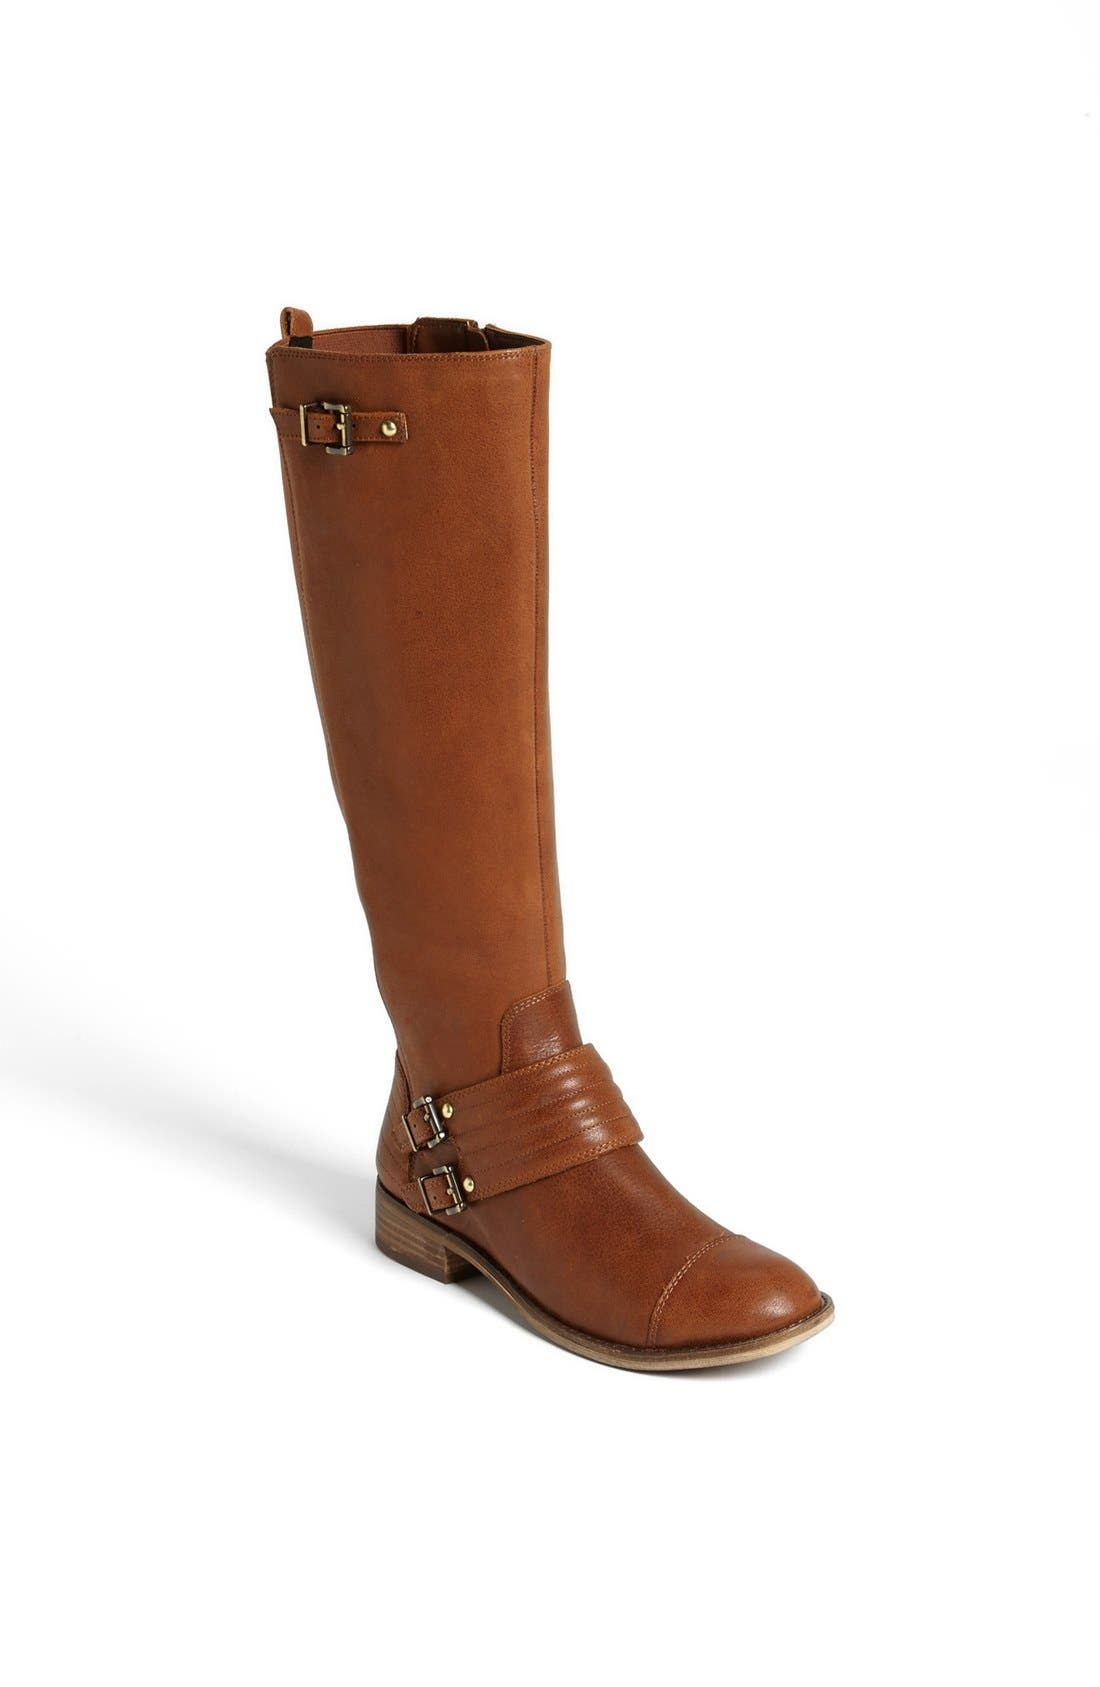 Alternate Image 1 Selected - Jessica Simpson 'Elmont' Boot (Wide Calf)